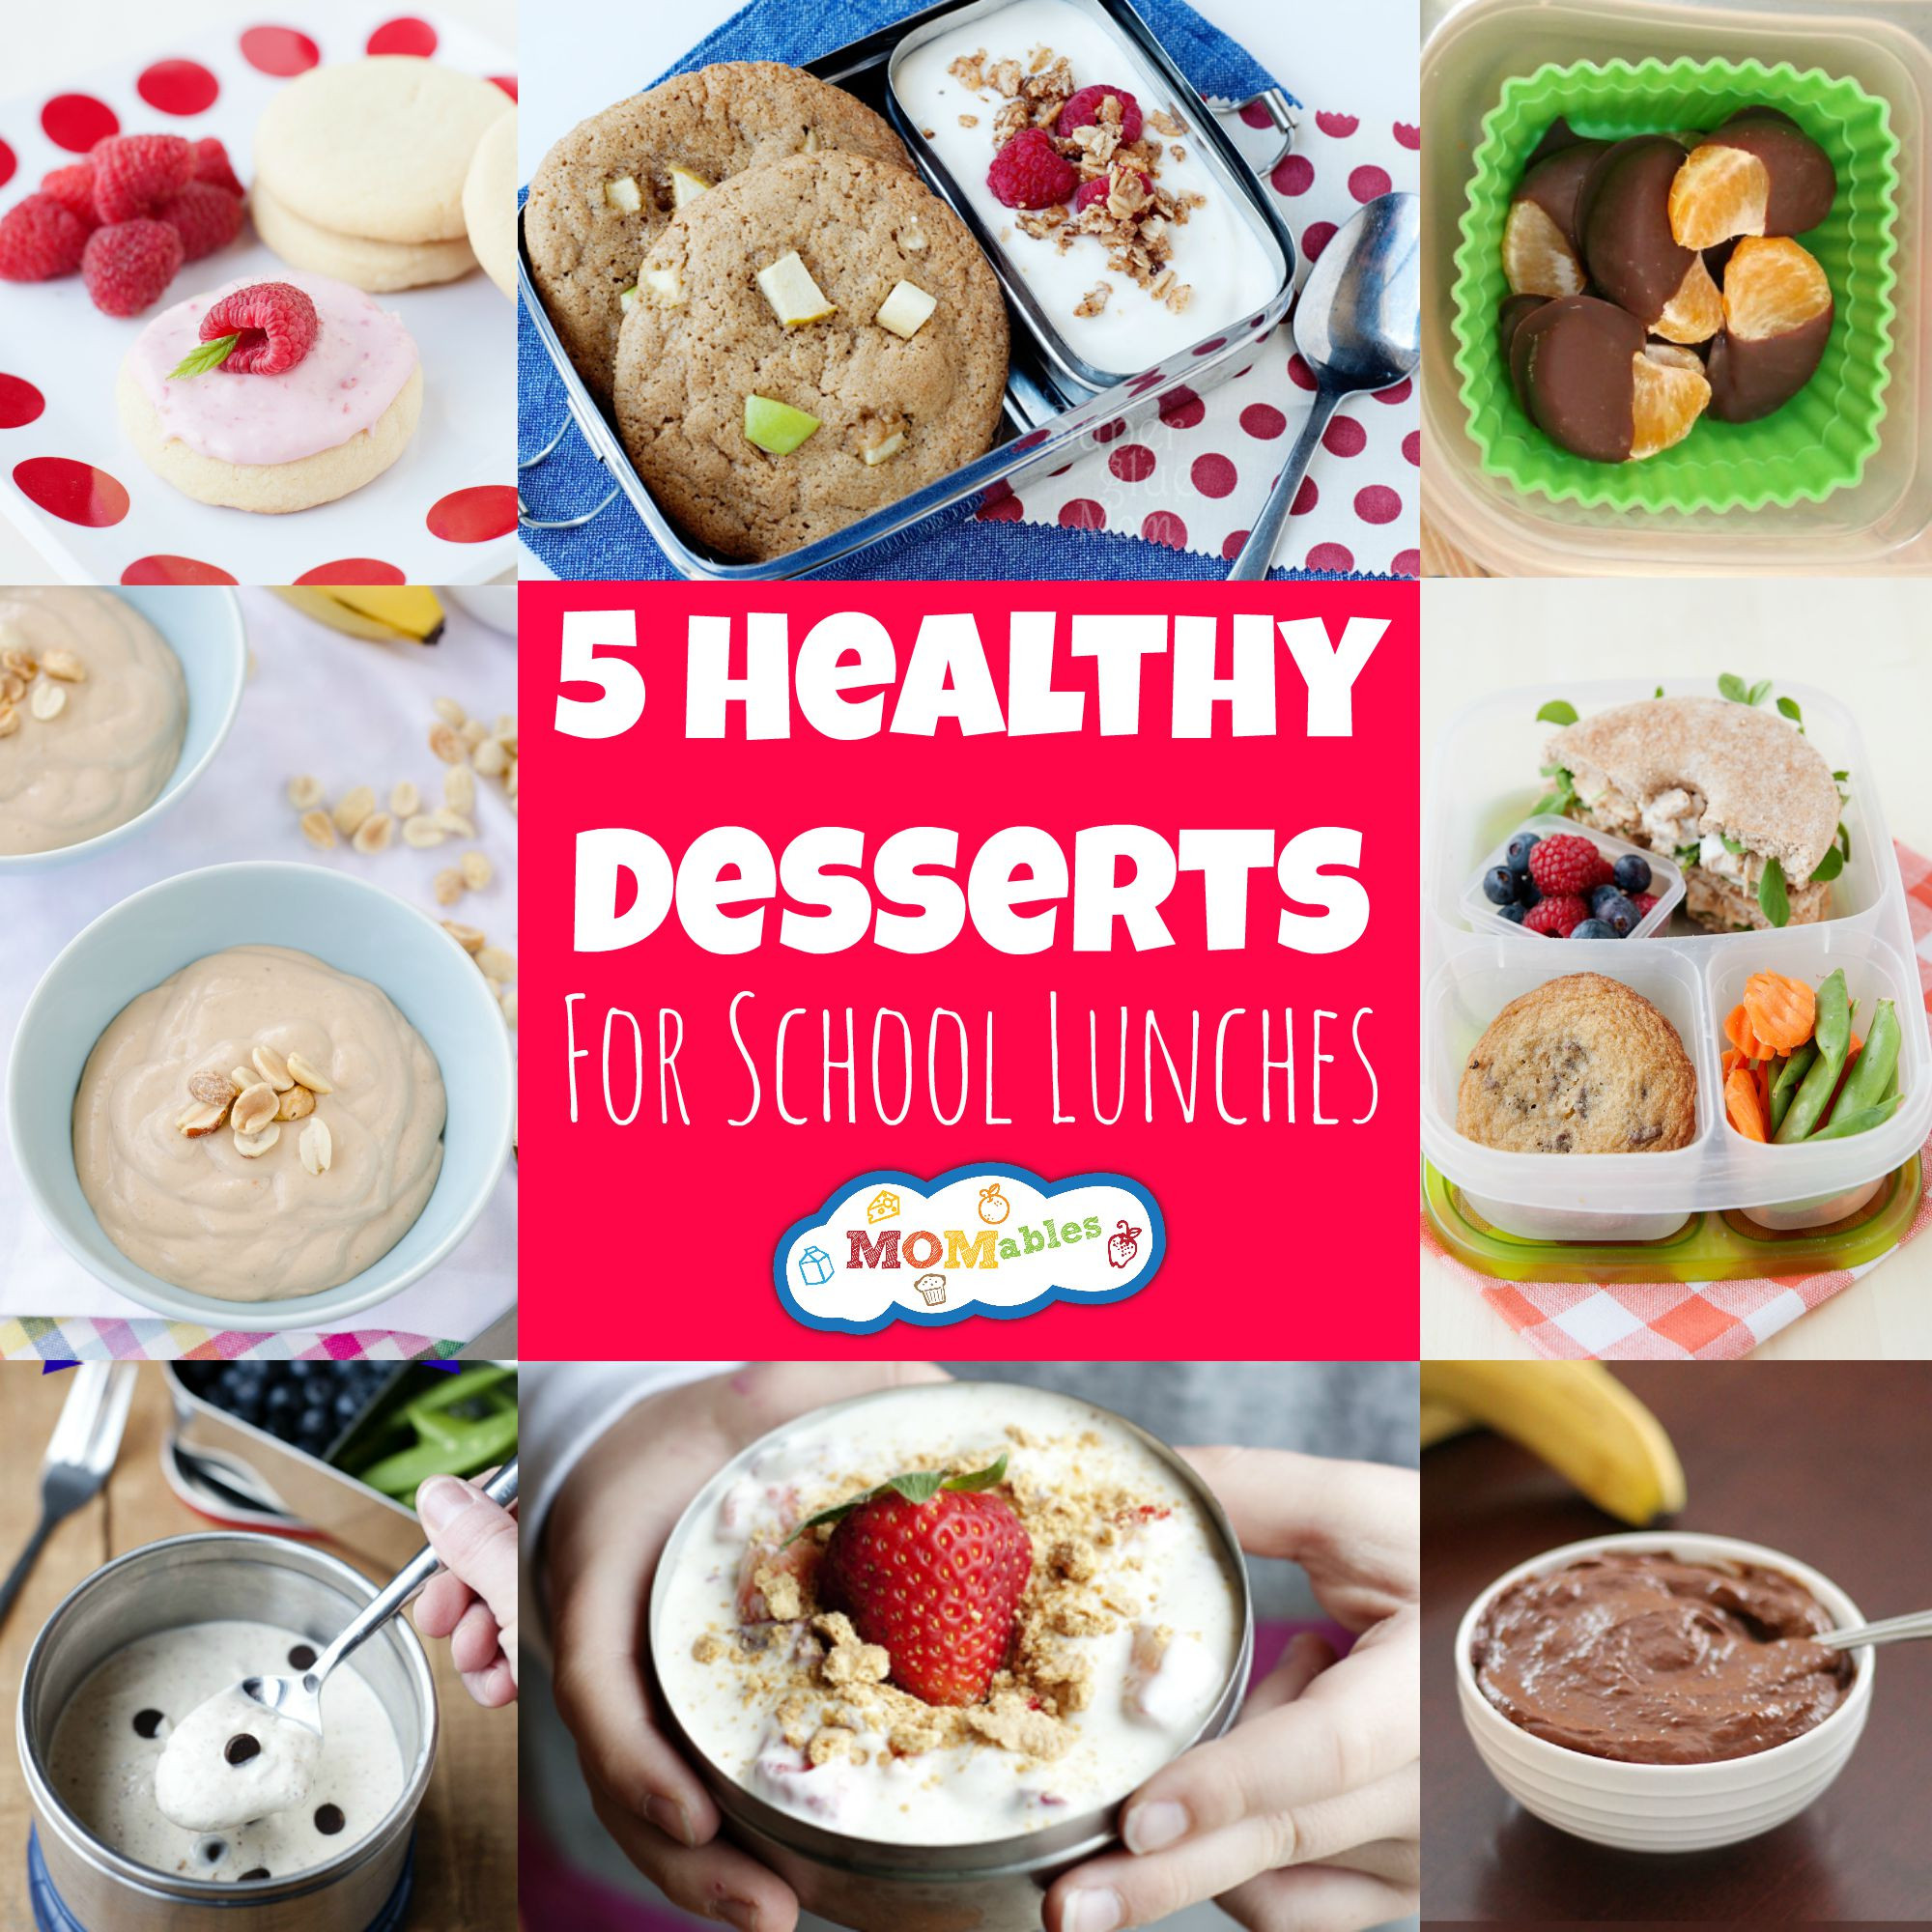 Healthy Desserts For Kids  5 Healthy Desserts for School Lunches MOMables